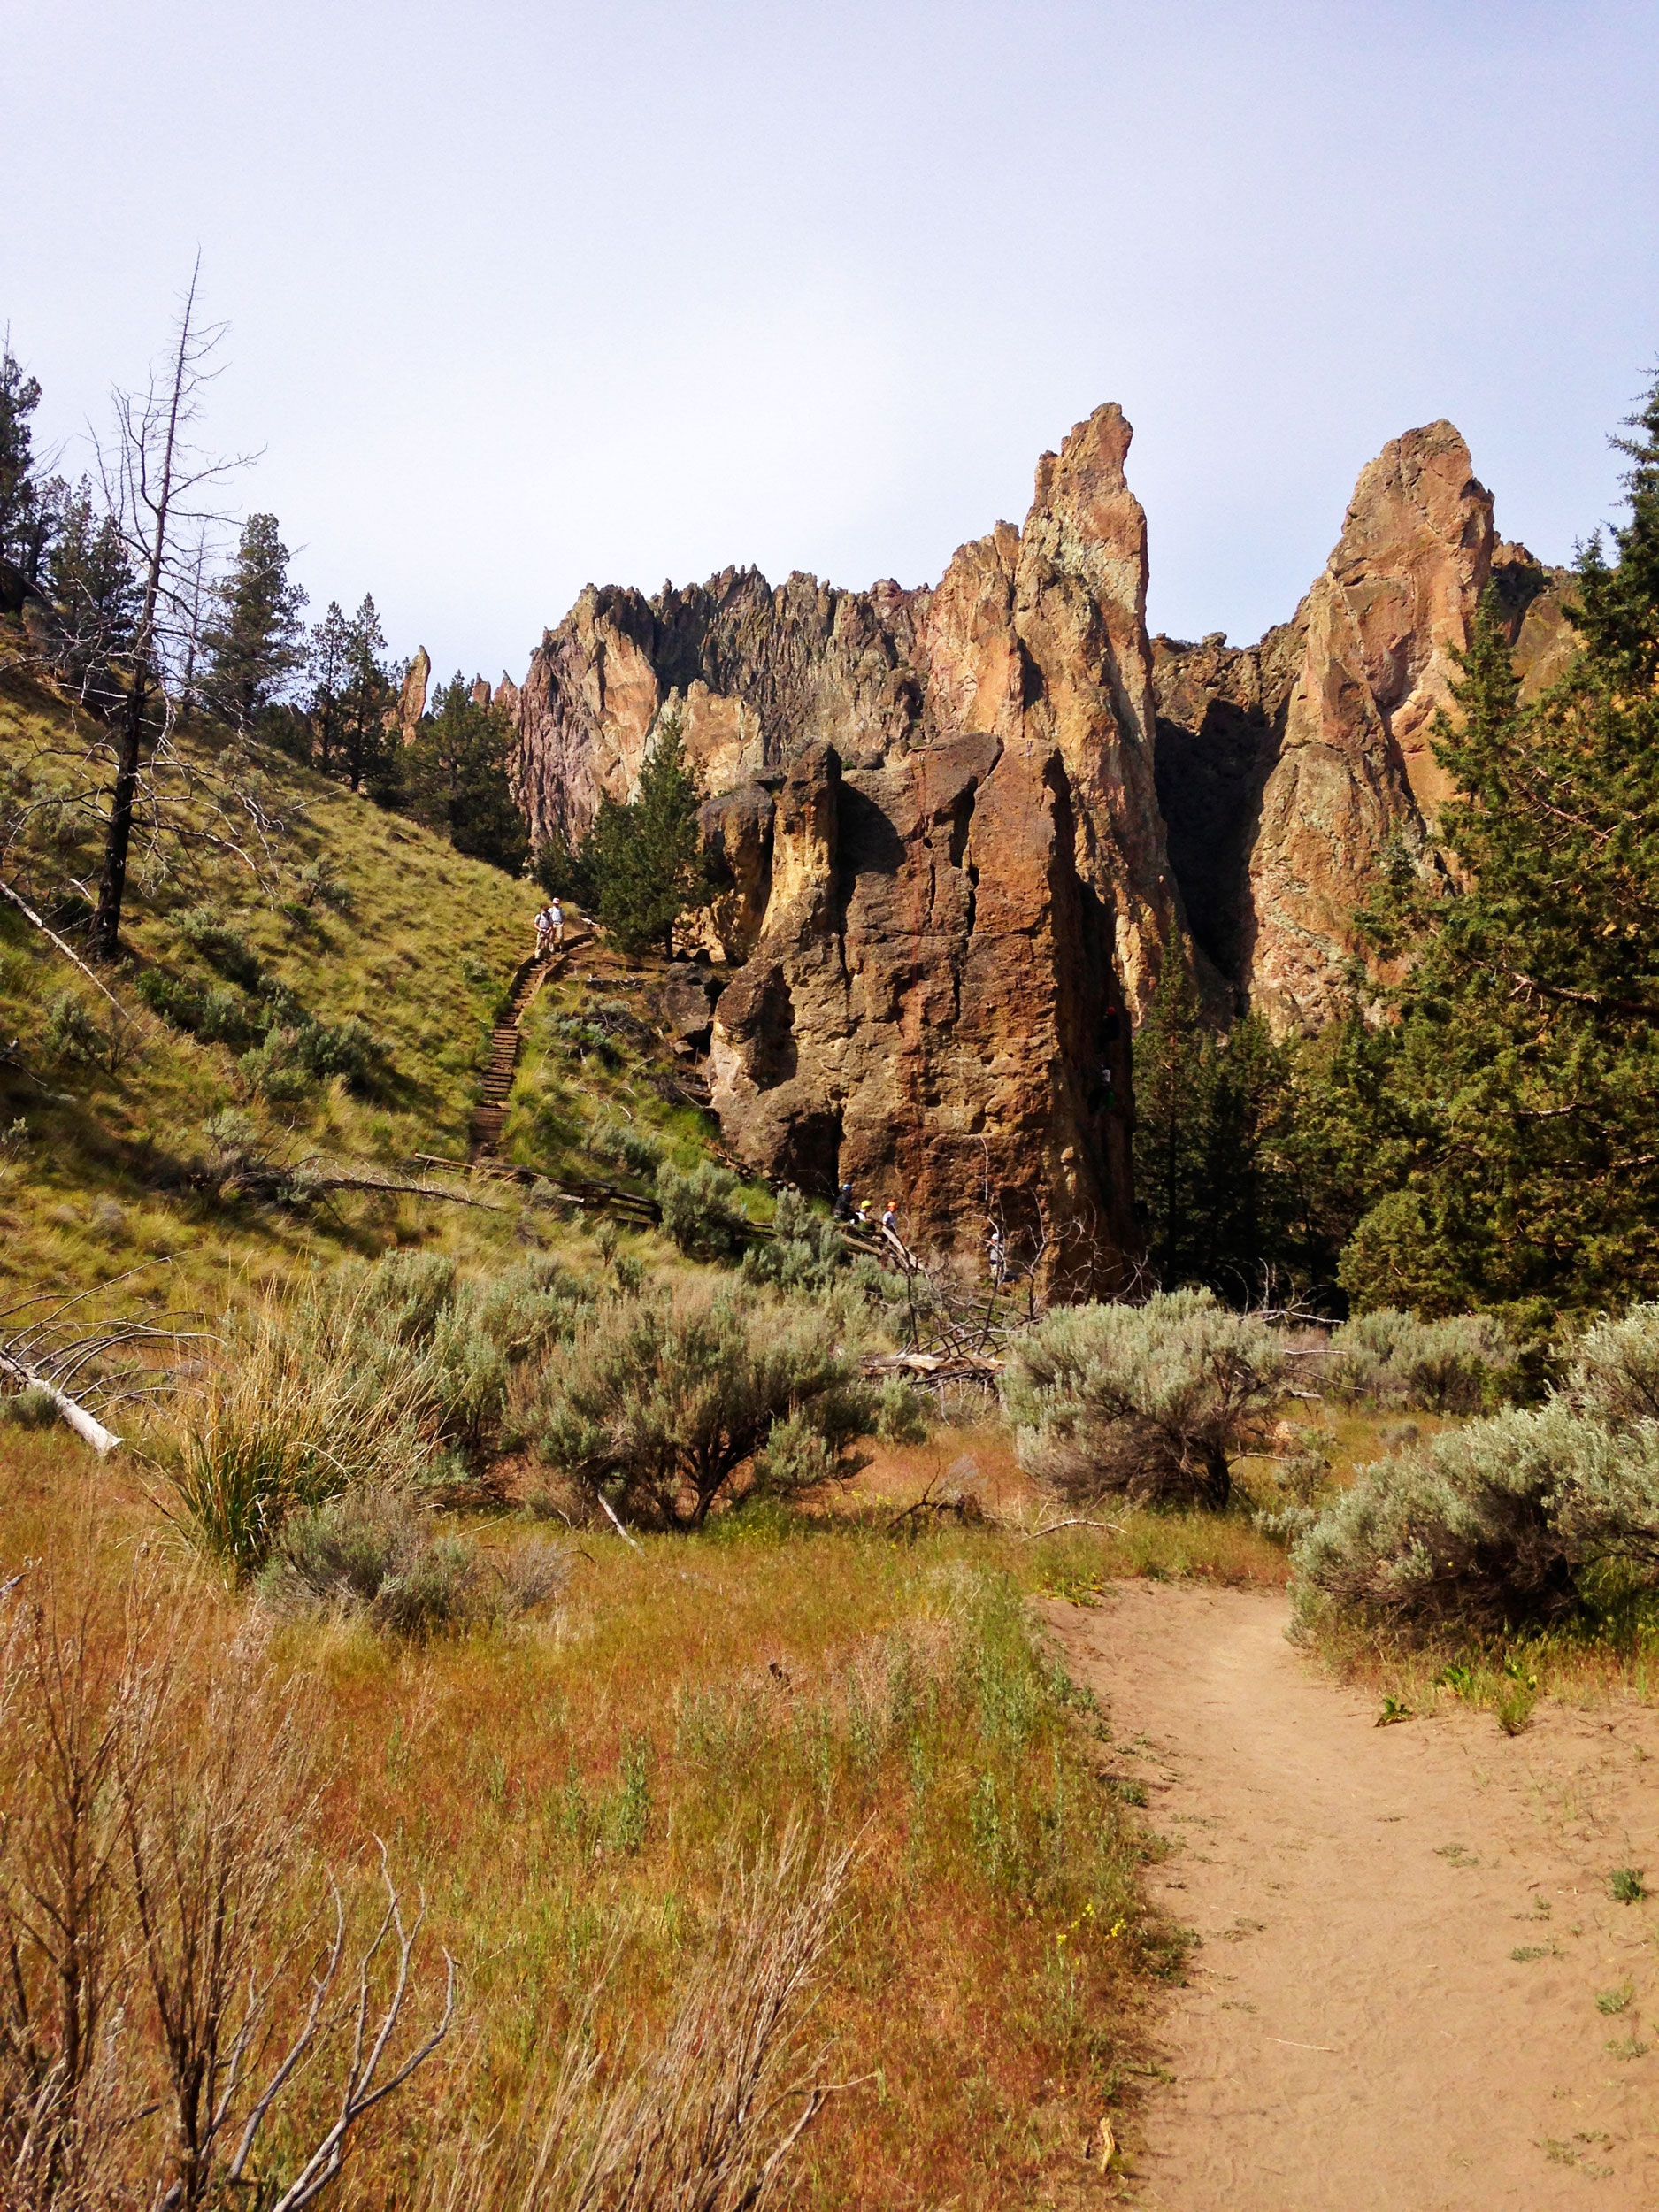 the Canyon Trail goes past climbing areas in Smith Rock State Park then along the Crooked RIver